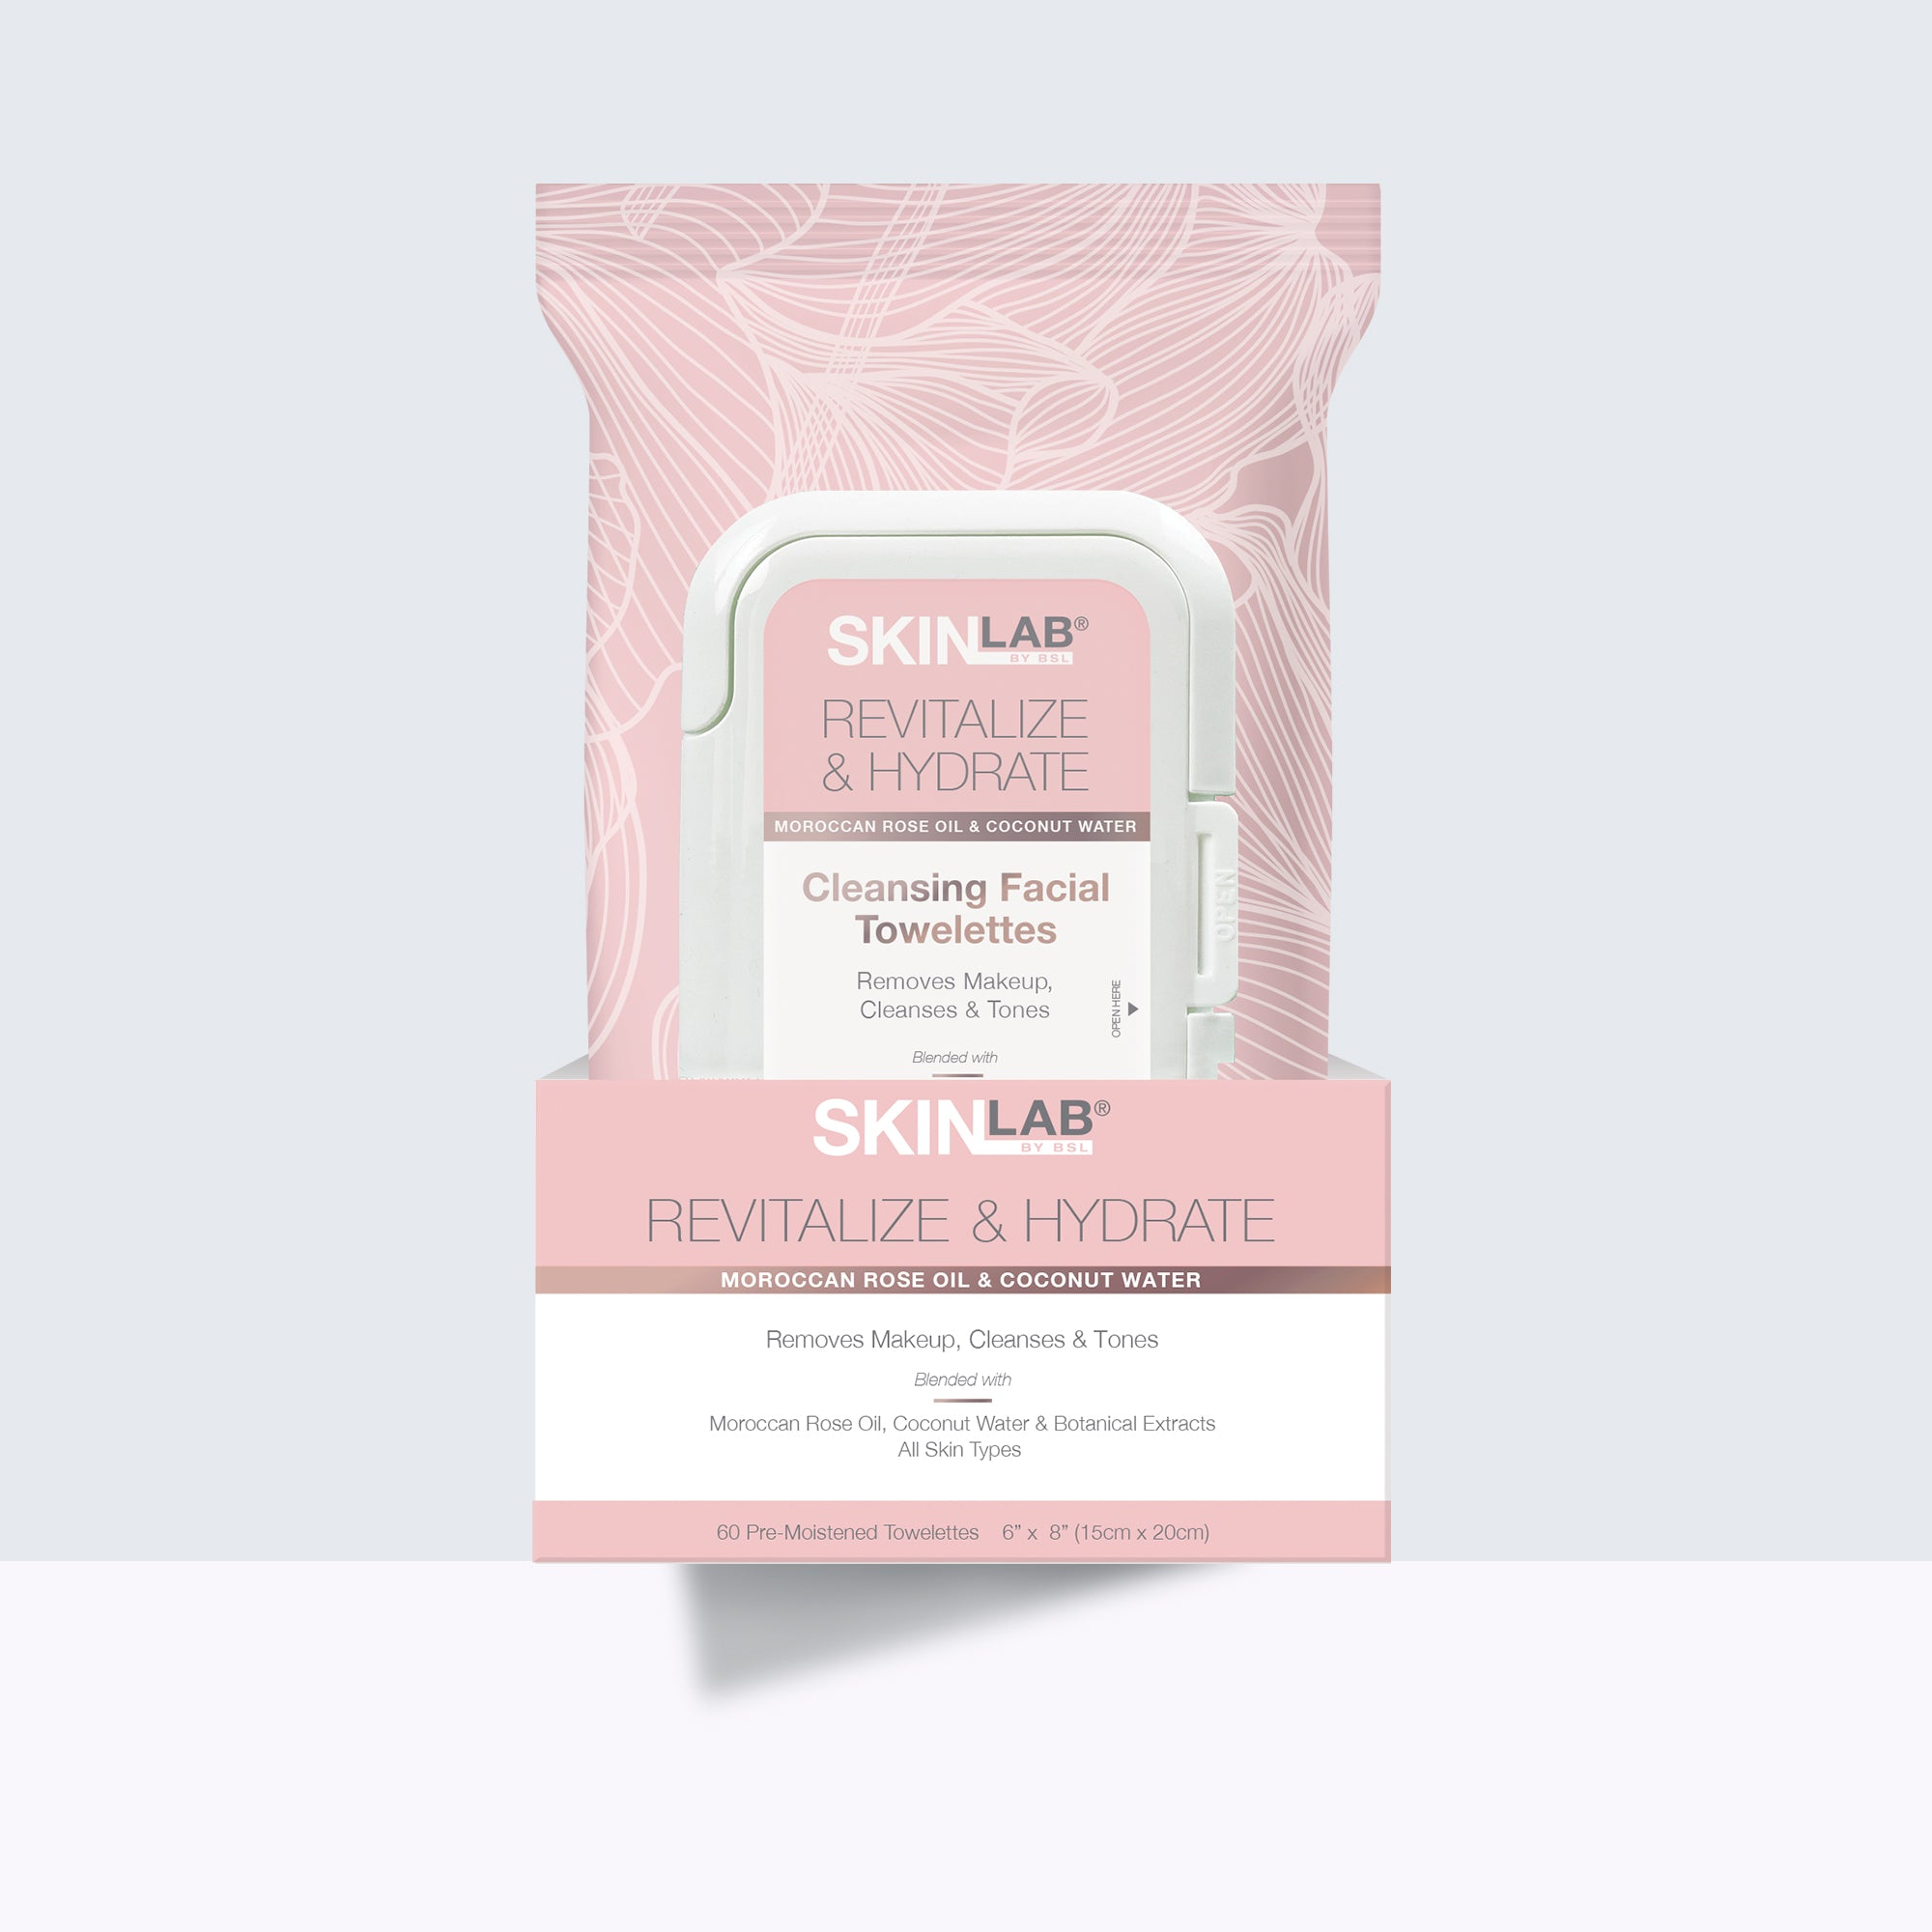 Revitalize & Hydrate Cleansing Facial Towelettes